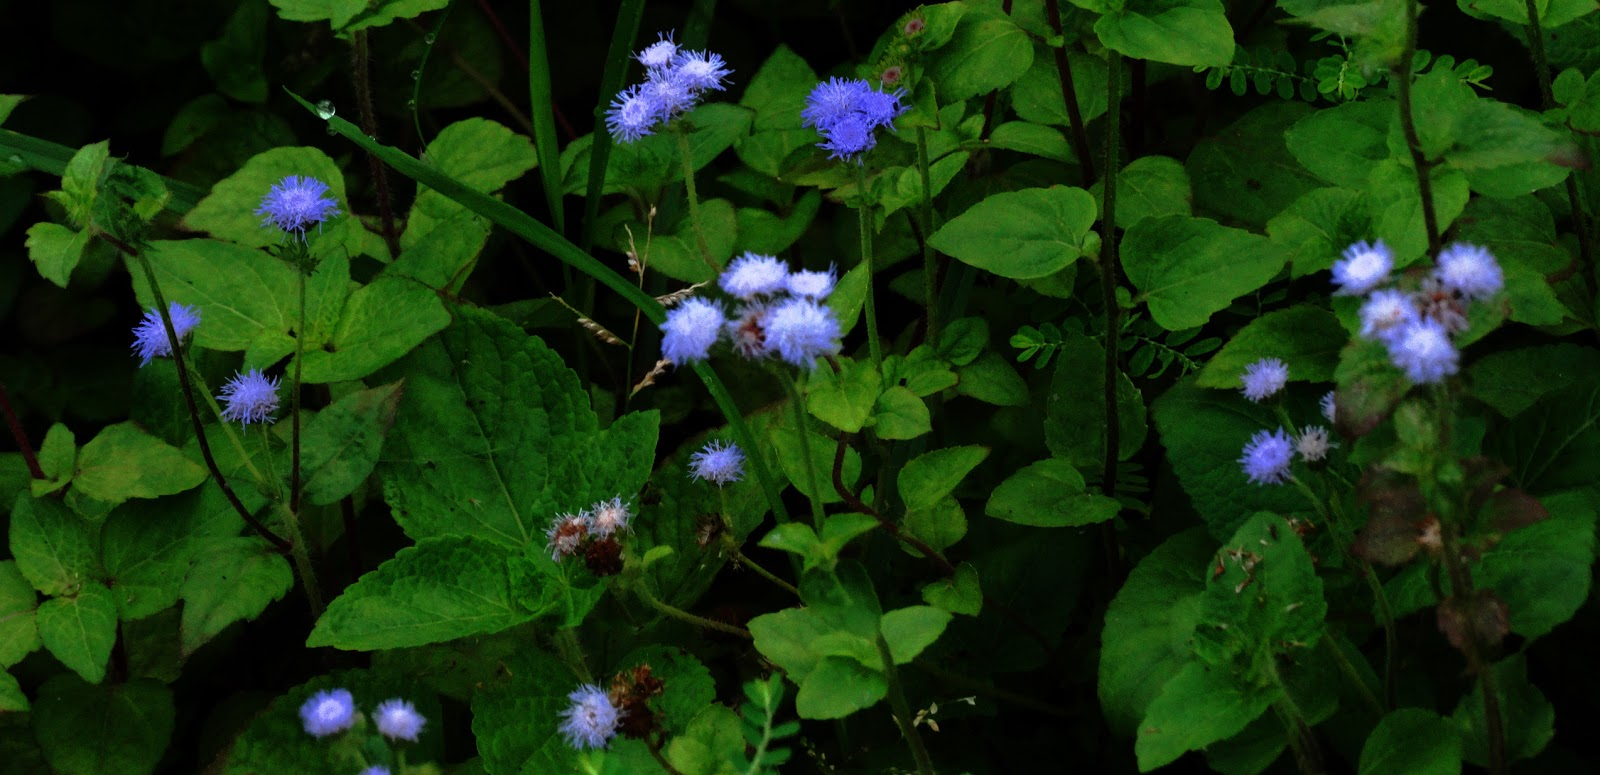 Lifefilms and nostalgia blue mist flower or wild ageratum blue mist flower or wild ageratum izmirmasajfo